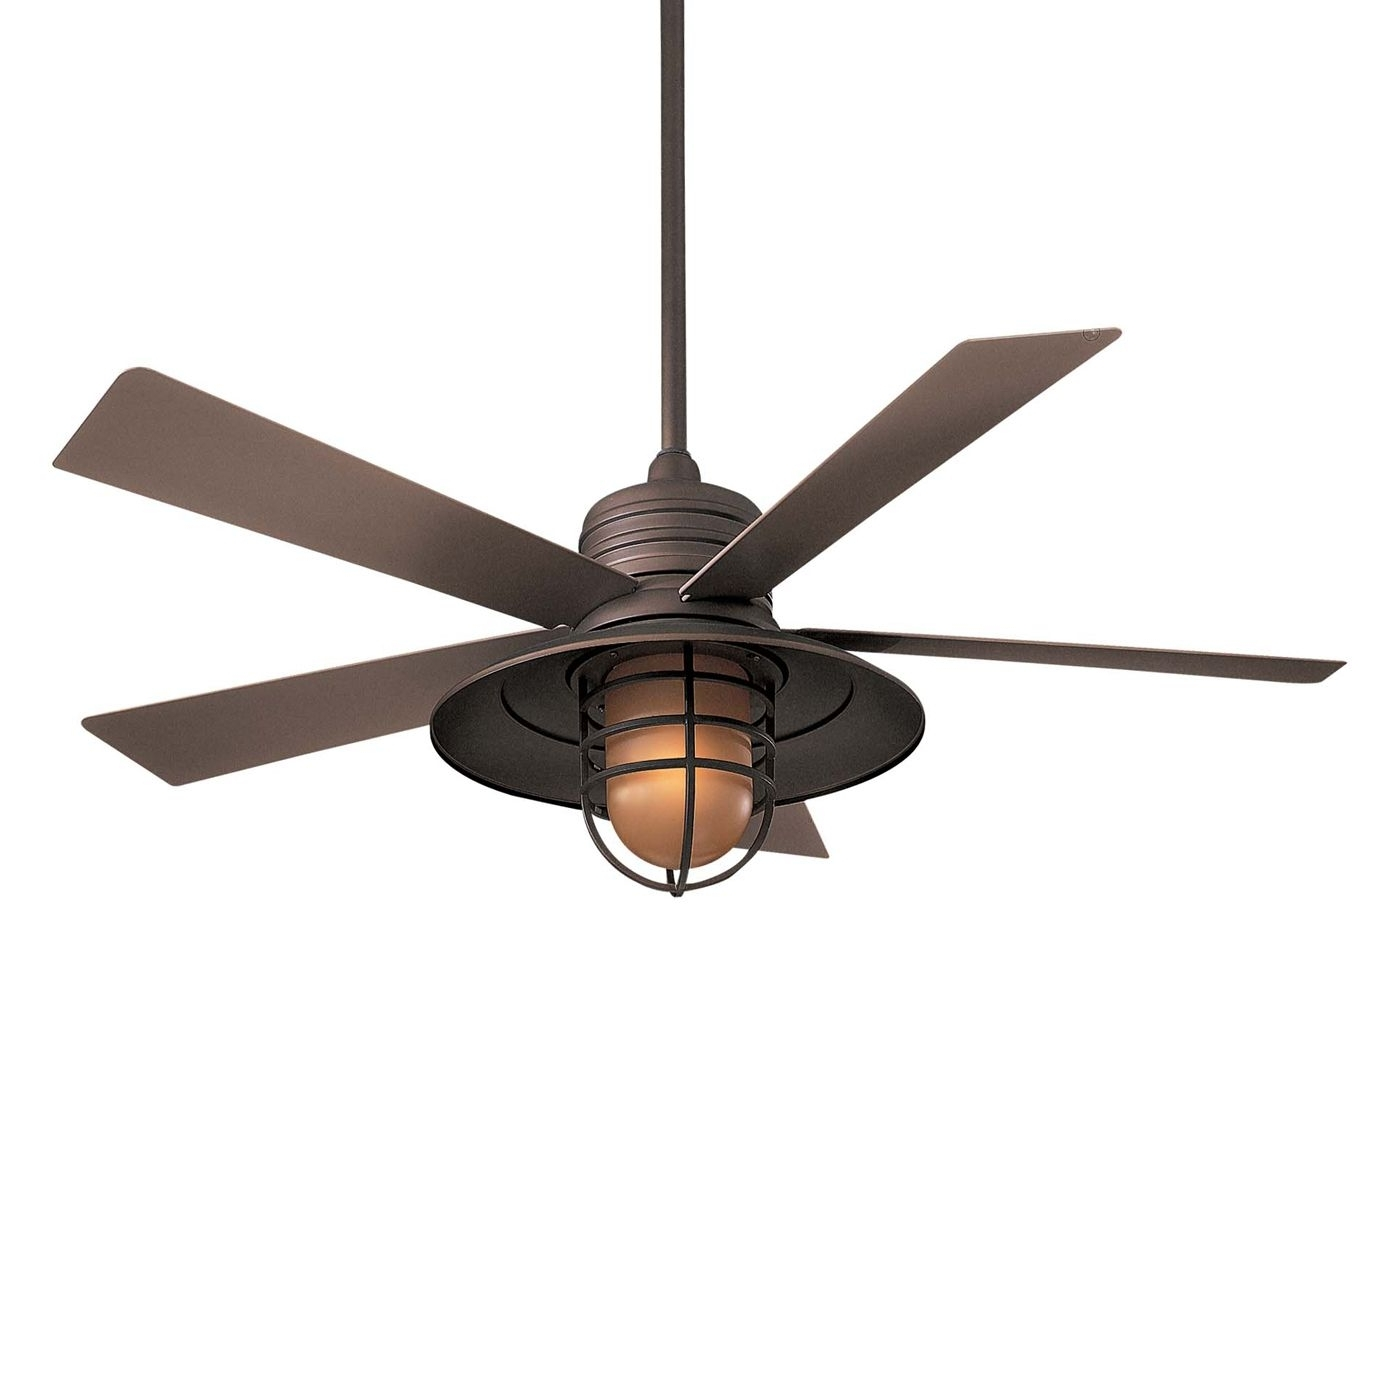 Minka Aire Outdoor Ceiling Fans With Lights Throughout Current Minka Aire F582 54 In Rainman™ Indoor/outdoor Ceiling Fan At Atg (View 12 of 20)